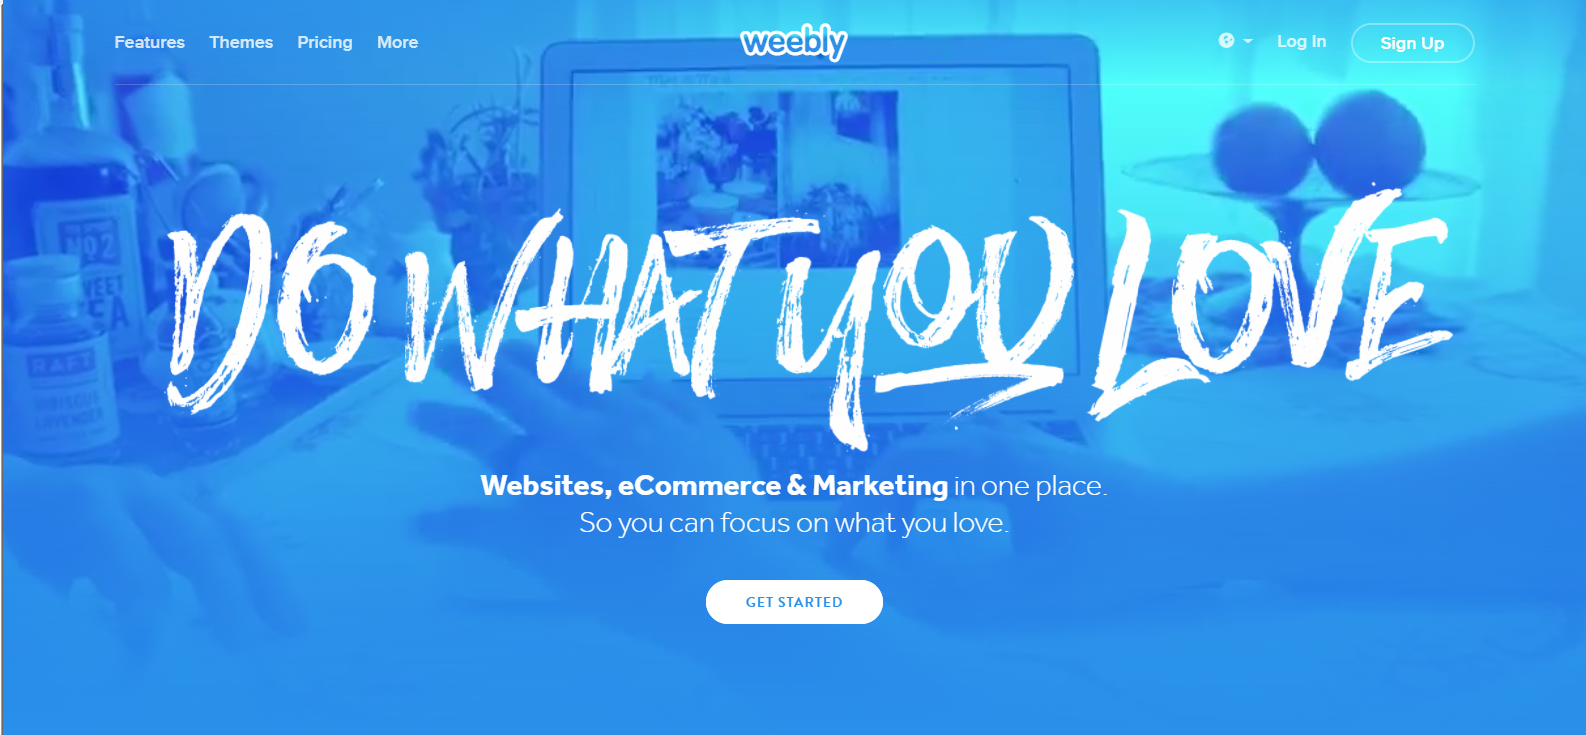 Create a Stunning Website with Weebly